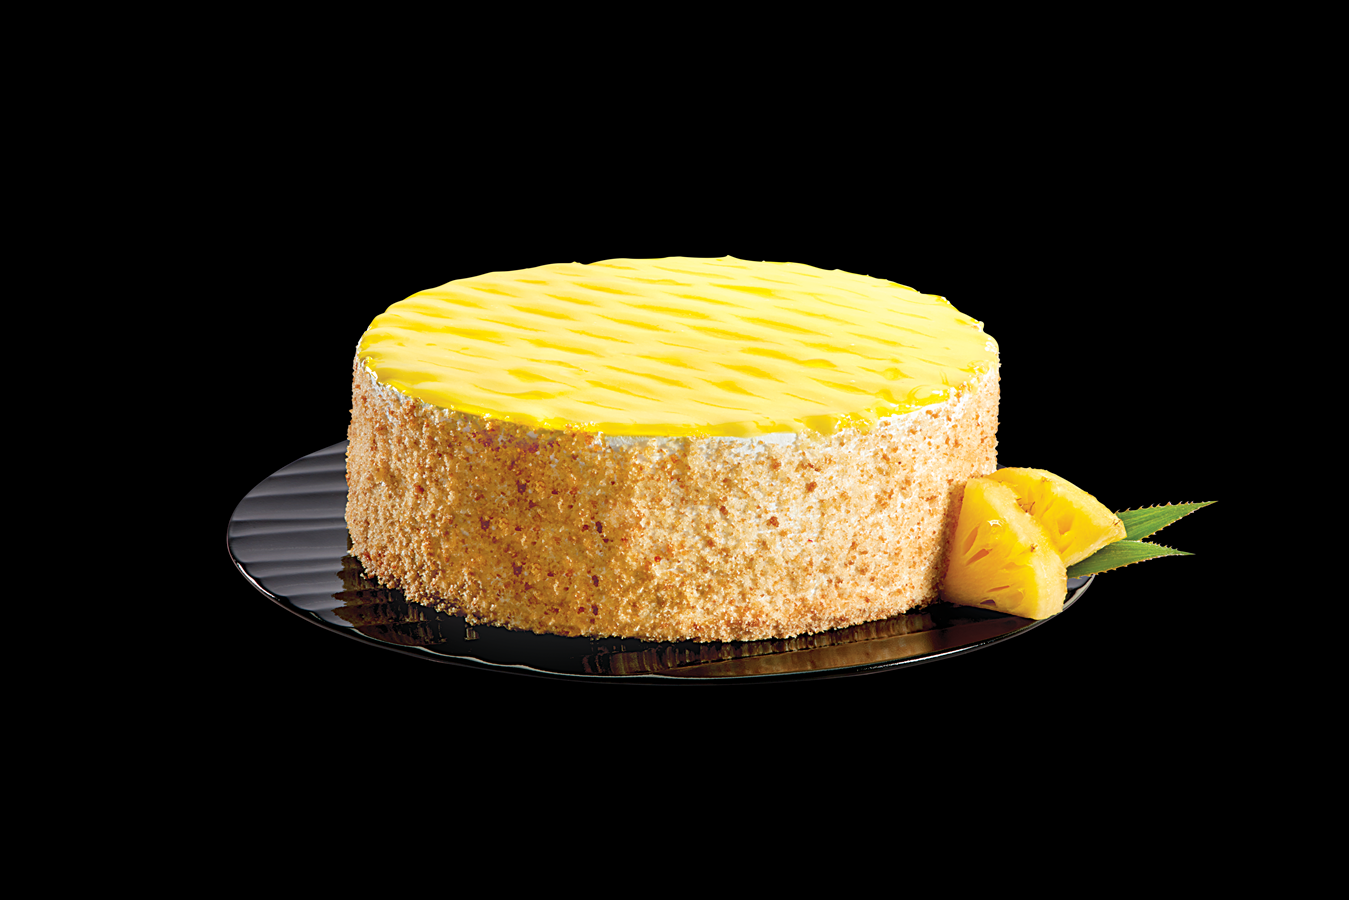 Pineapple Delight Cake Delicious Cake Send It To Your